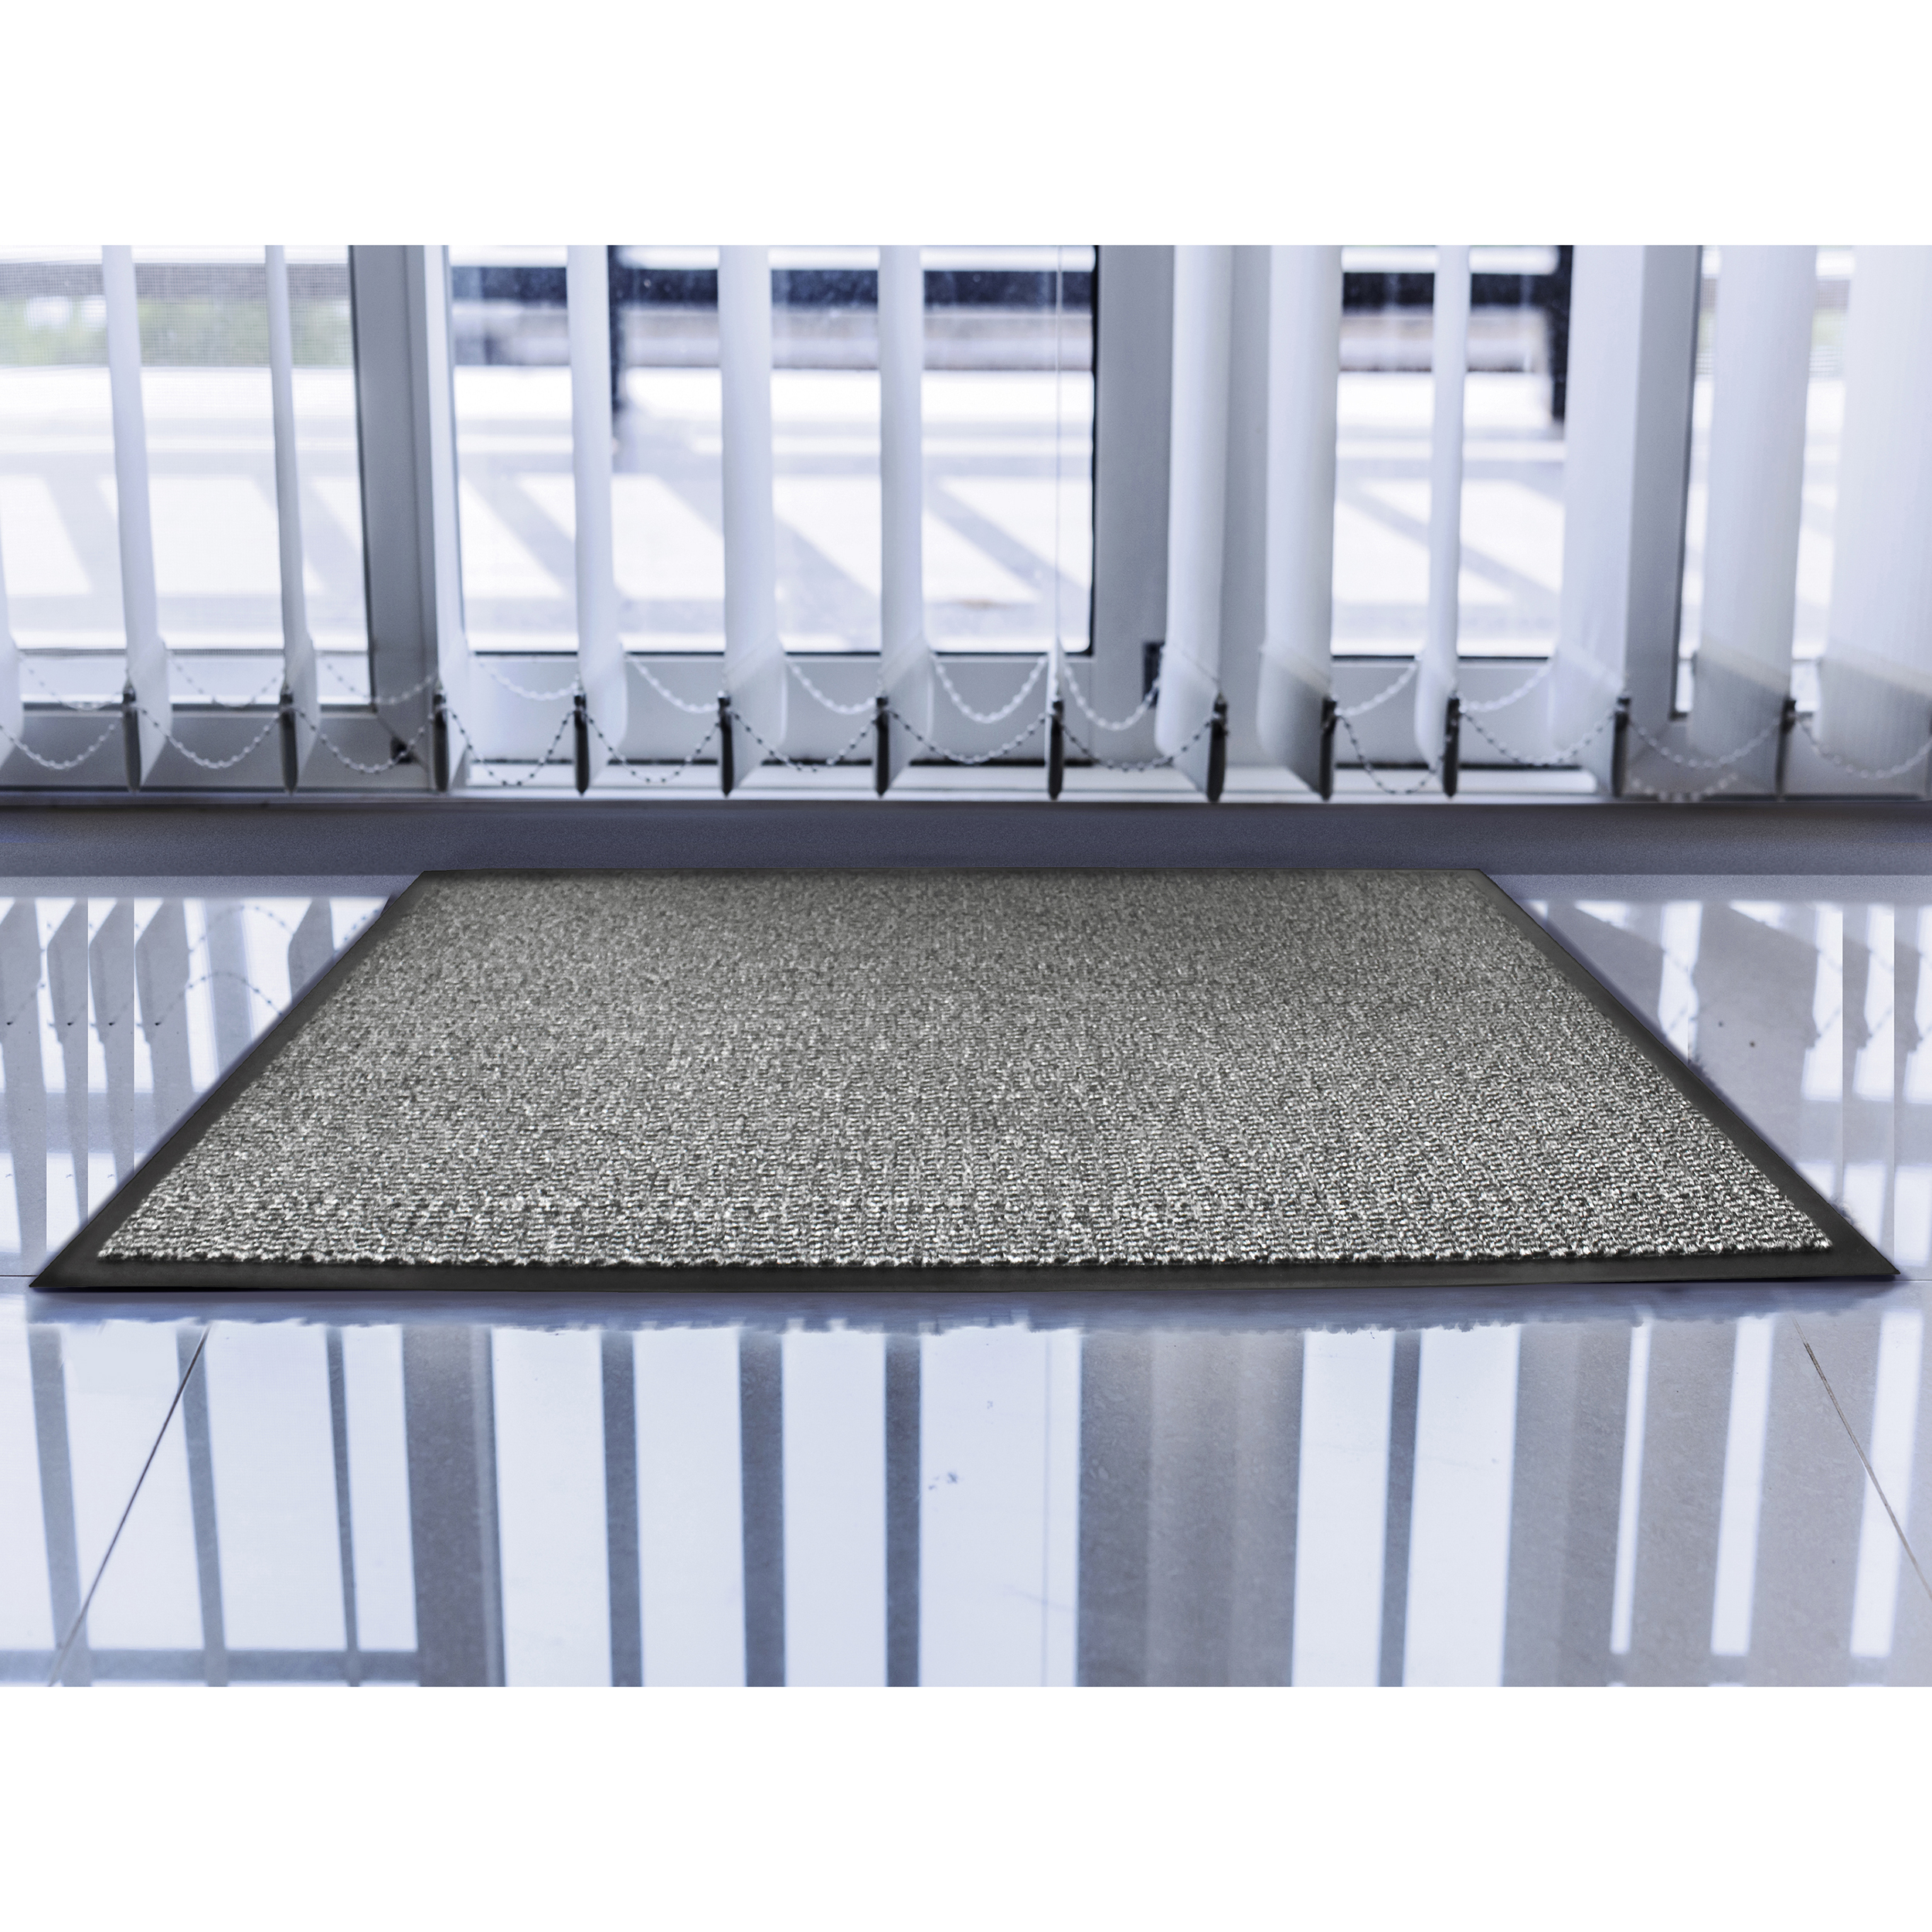 Indoor Doortex Advantagemat Door Mat for Dust & Moisture Polypropylene 900x1200mm Anthracite Ref FC49120DCBWV